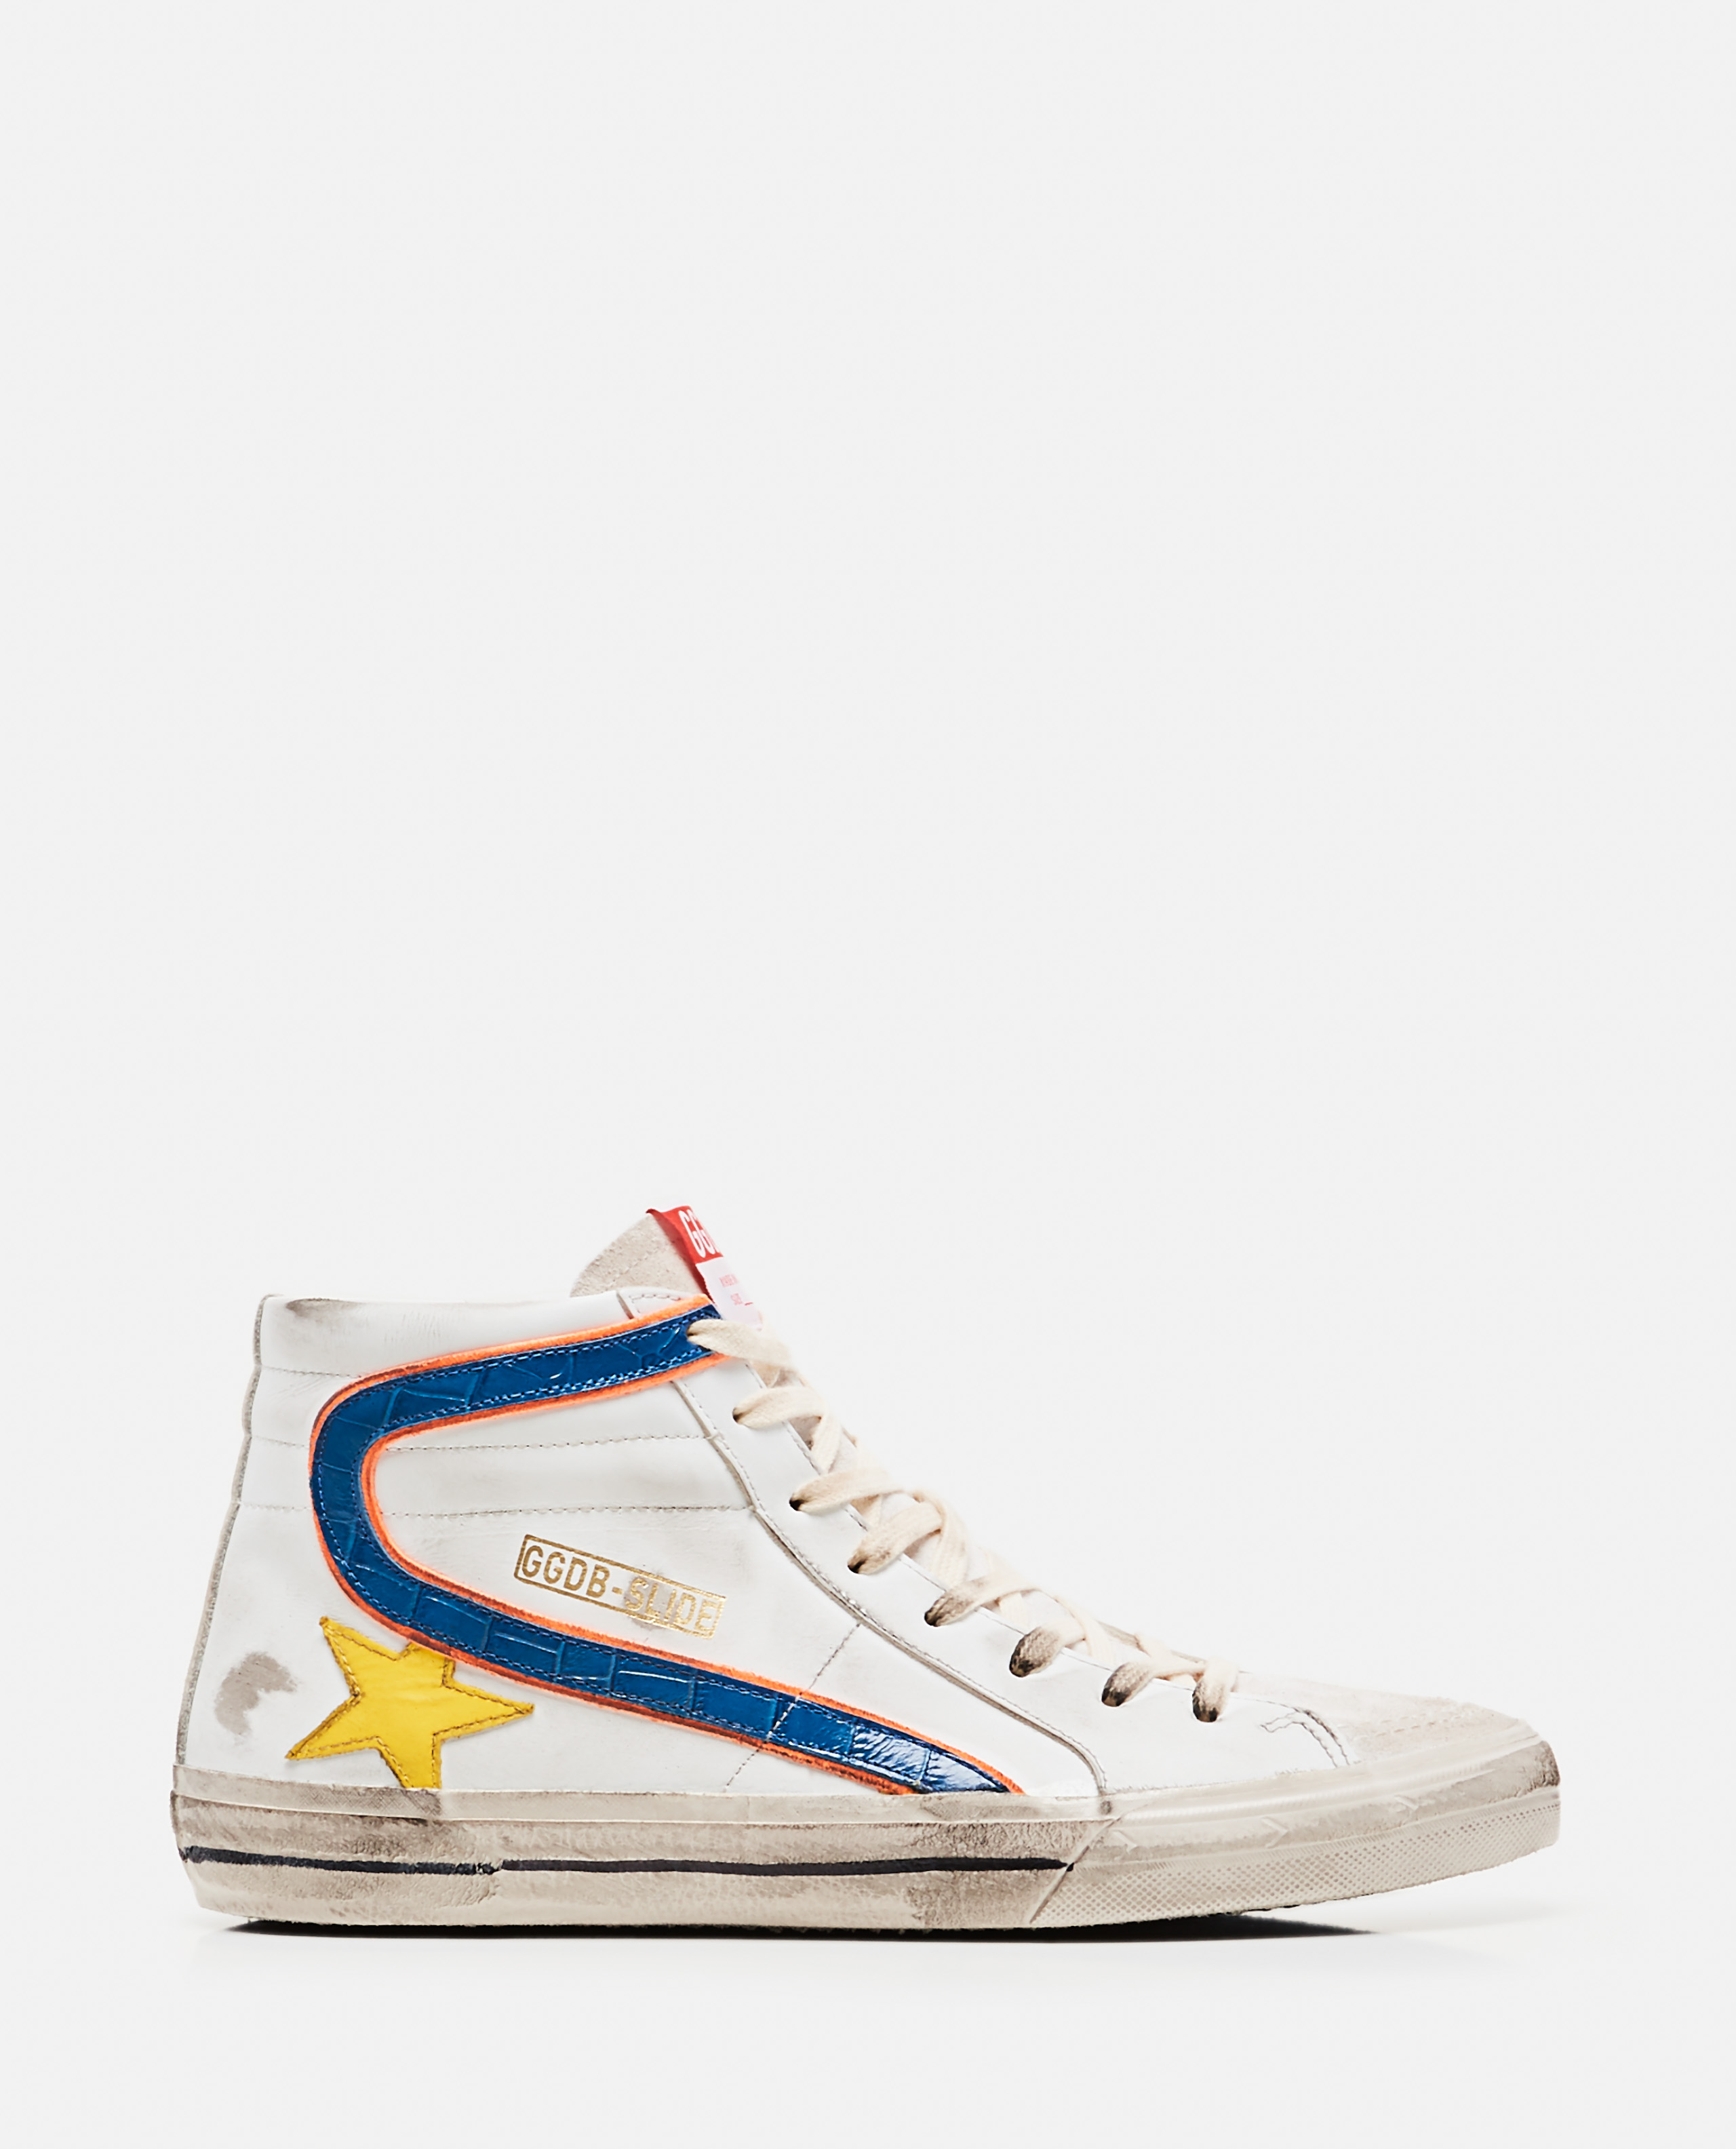 Golden Goose Leathers GOLDEN GOOSE SLIDE HIGH SNEAKERS IN LEATHER